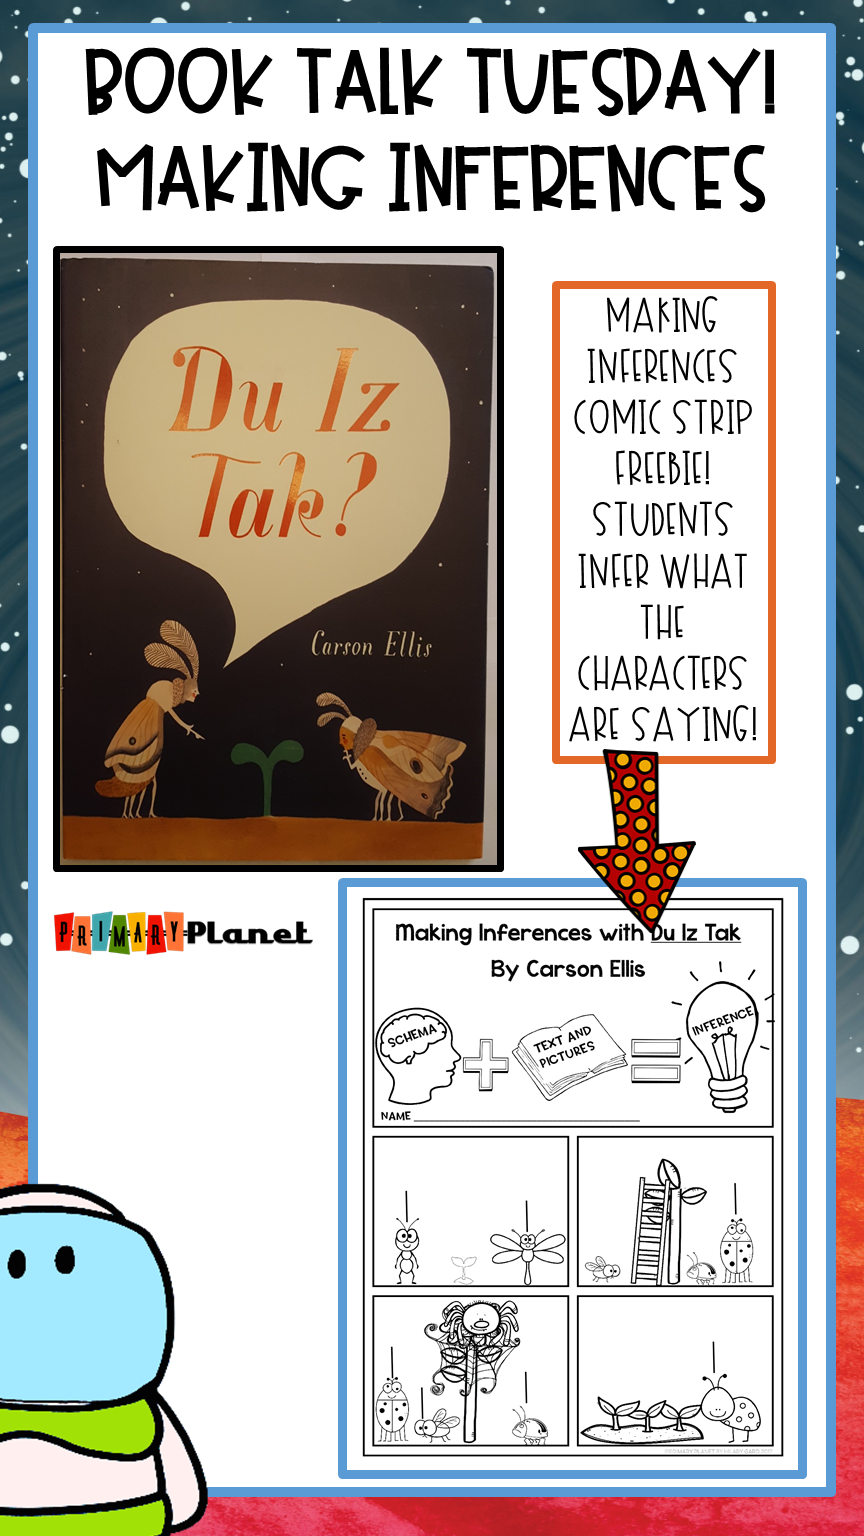 Making Inferences with Du Iz Tak by Carson Ellis with a comic book freebie!